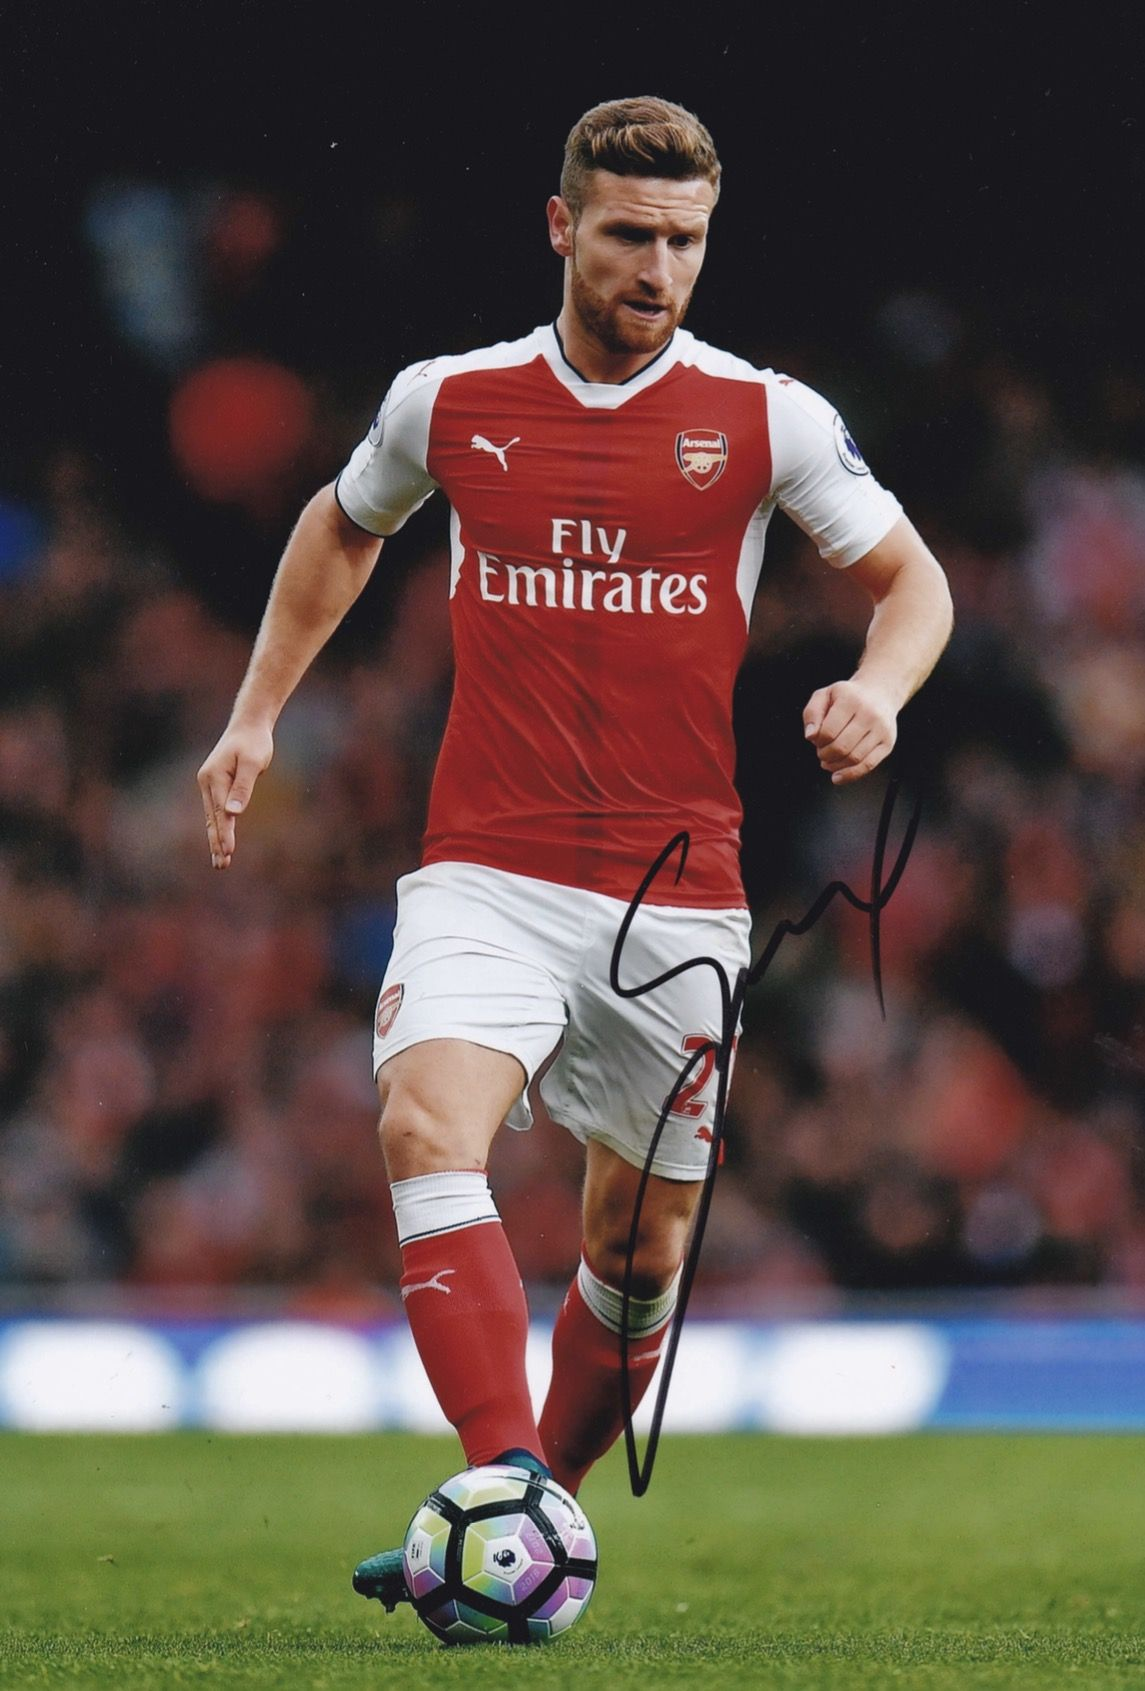 Pin by Philander Andre on Arsenal football club Arsenal